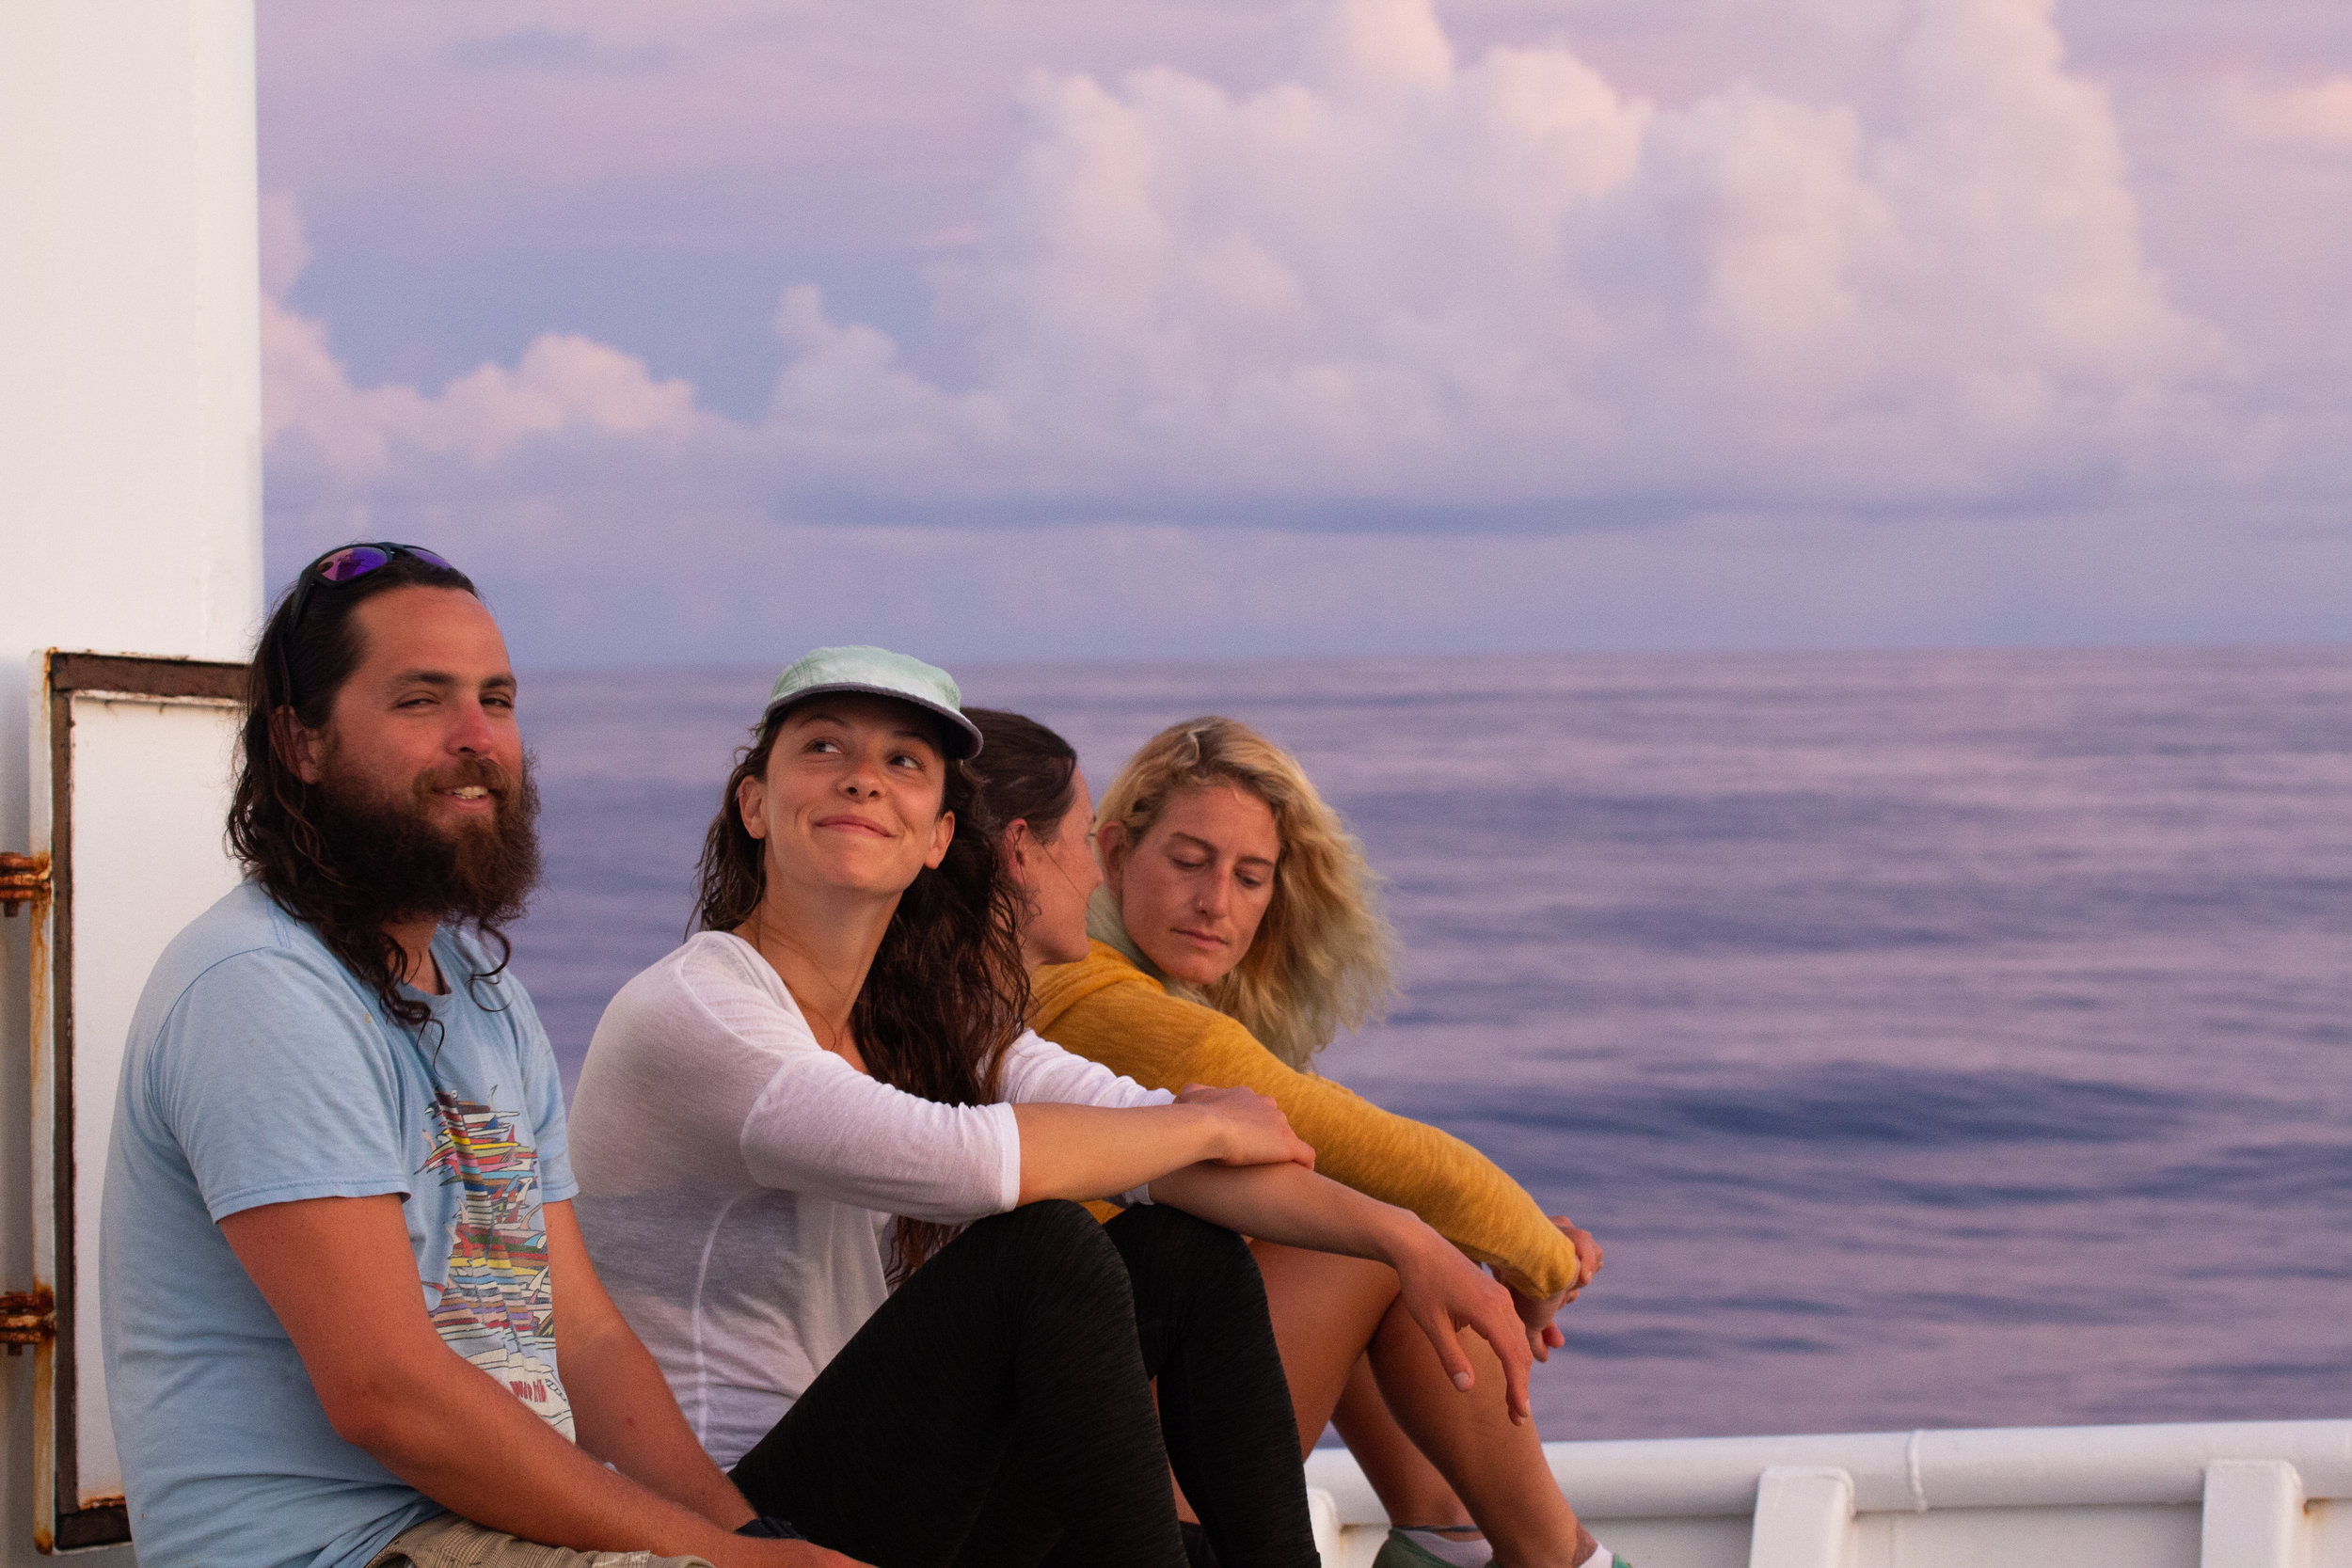 Some battle-worn grad students enjoying a sunset on a research cruise in American Samoa. Photo credit: Kevin Green